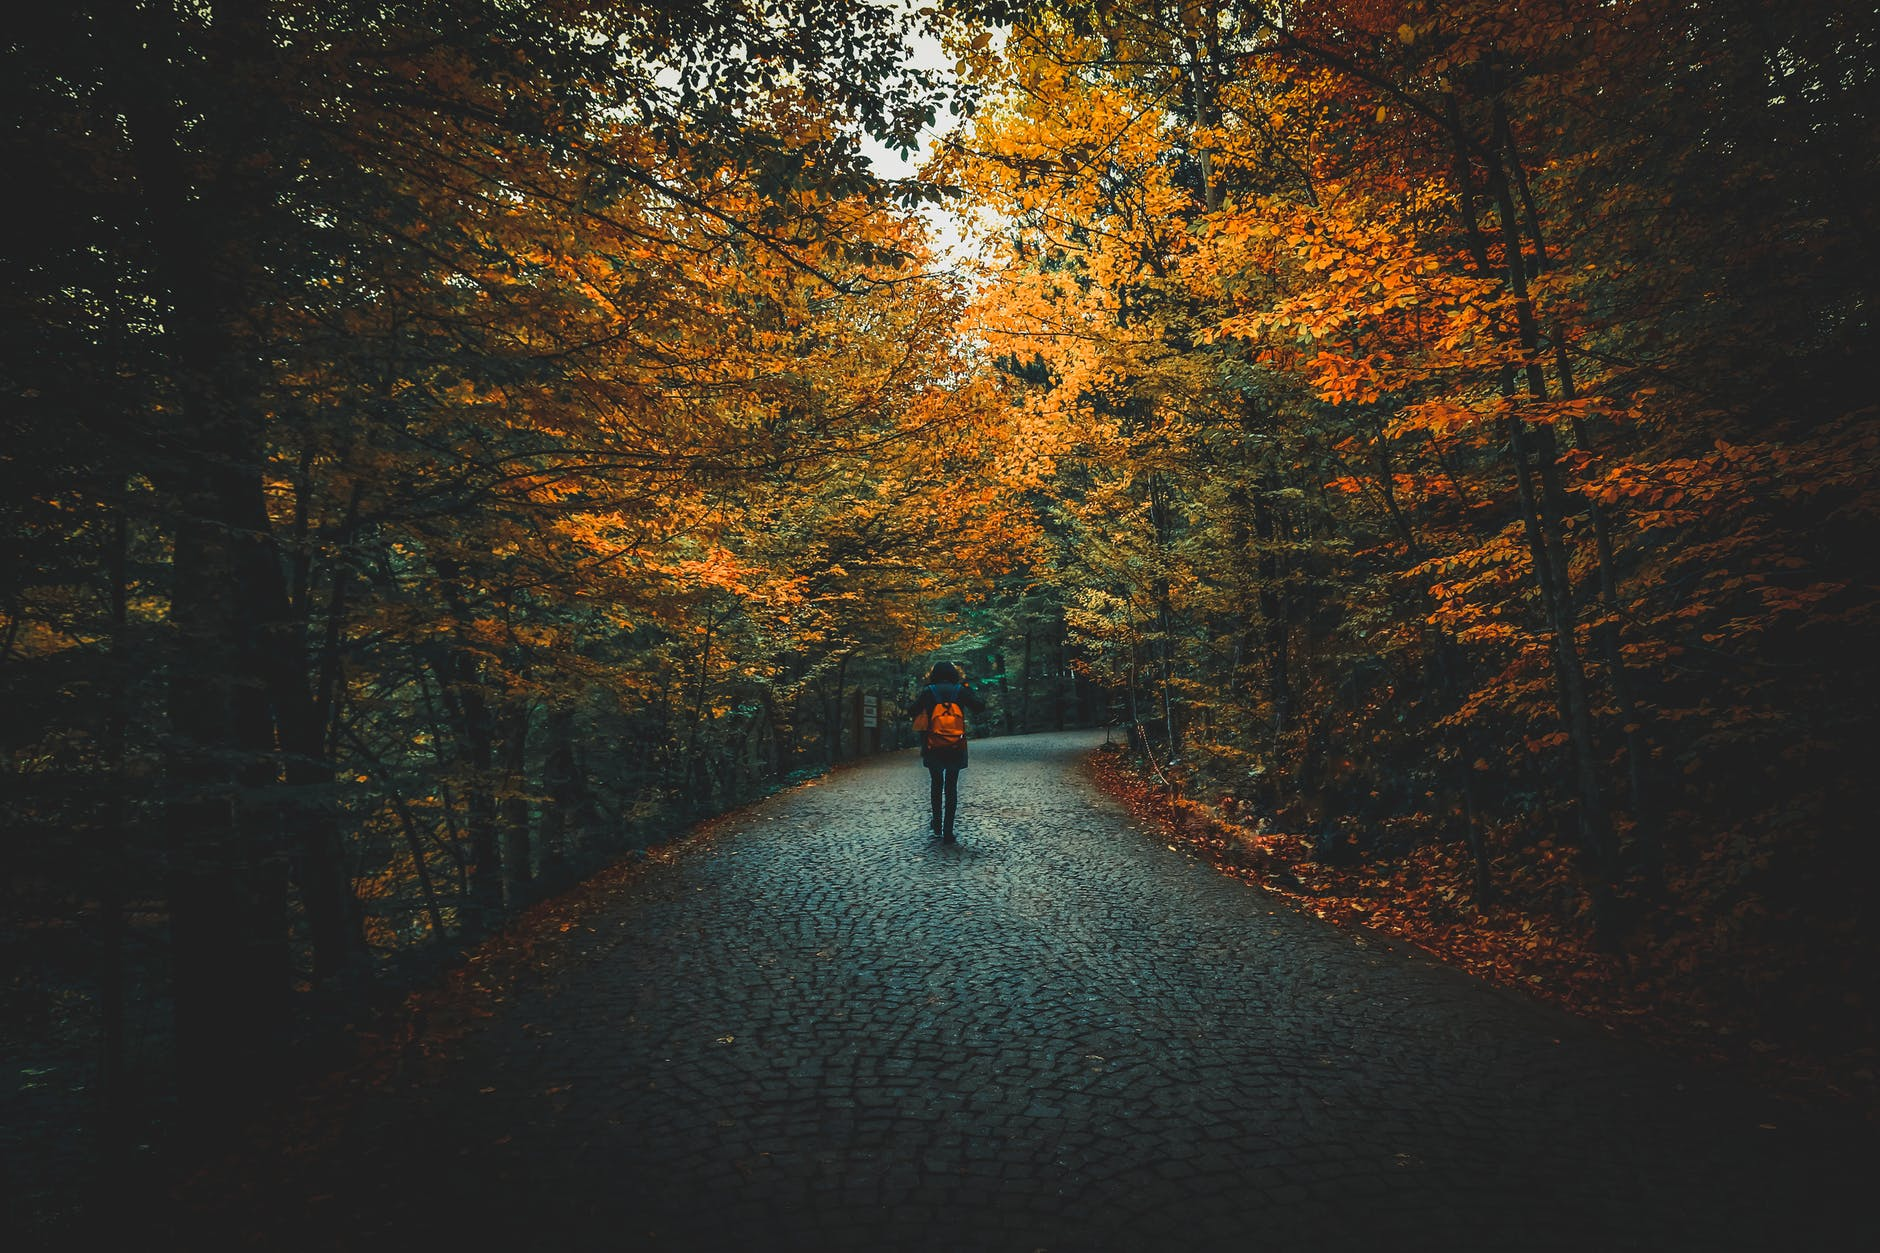 man walking on road with orange bag surrounded by trees